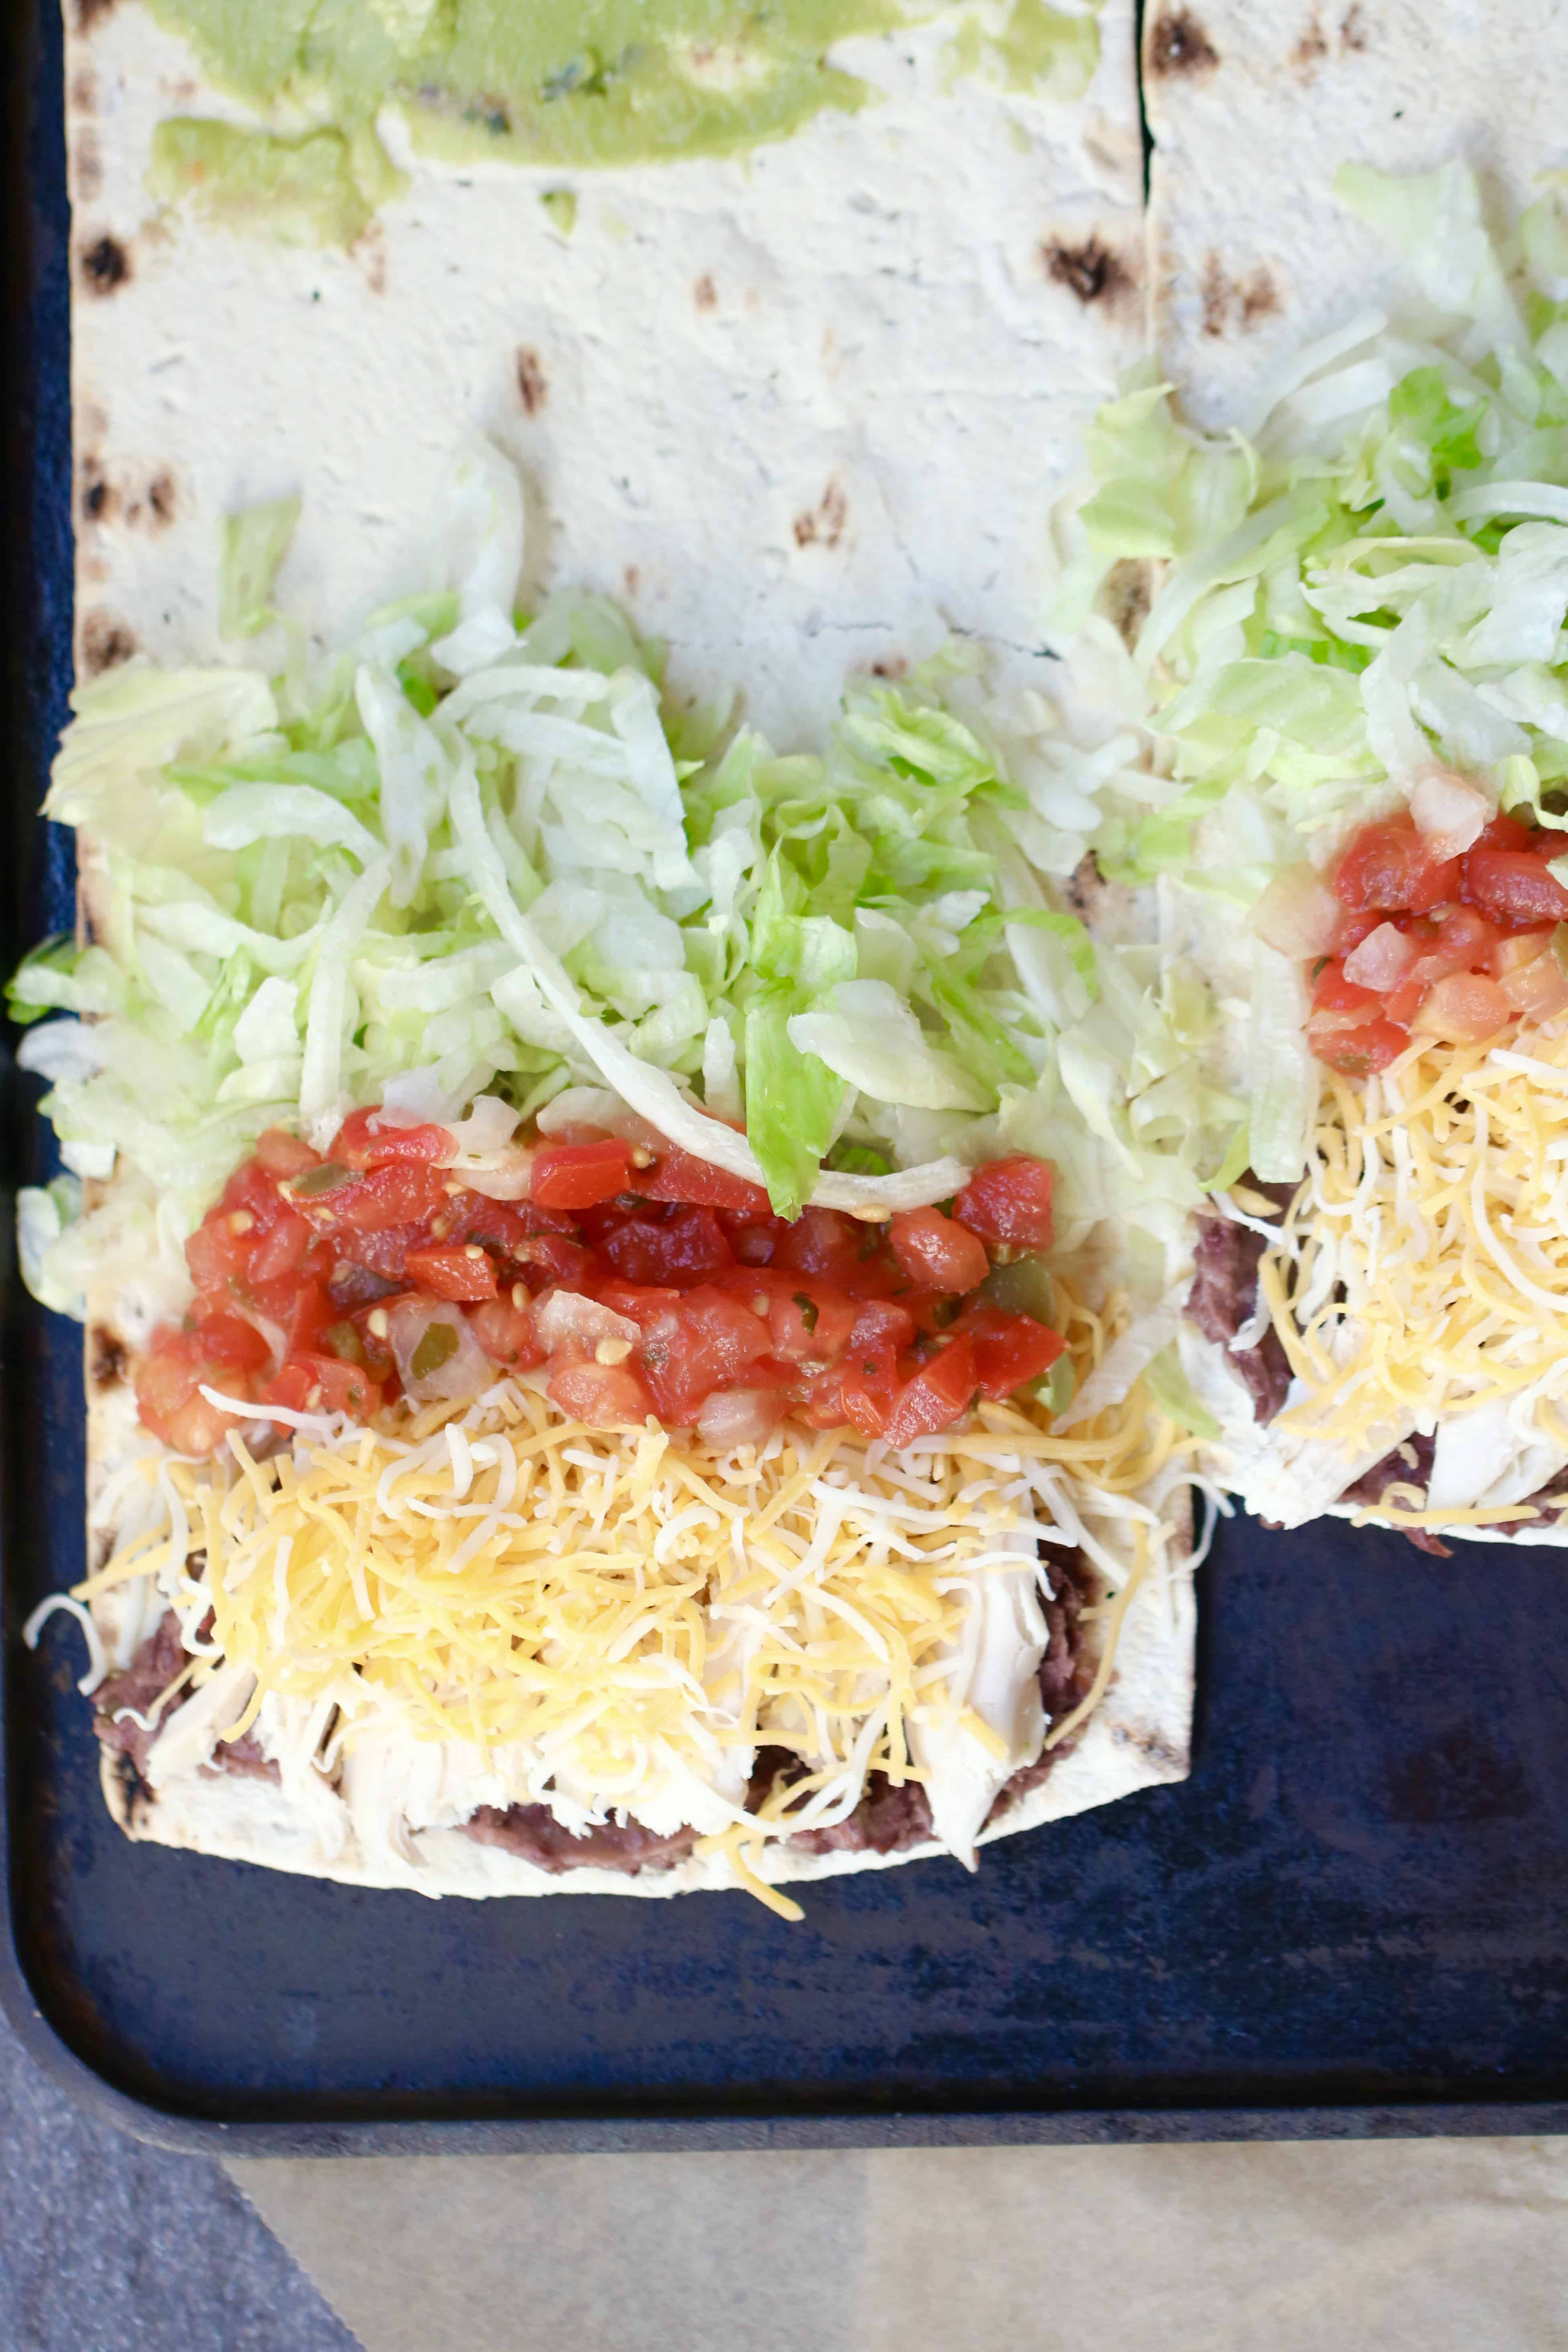 California Crunchwrap Supreme - Flatout Friendly & Weight Watchers Approved! @shawsimpleswaps